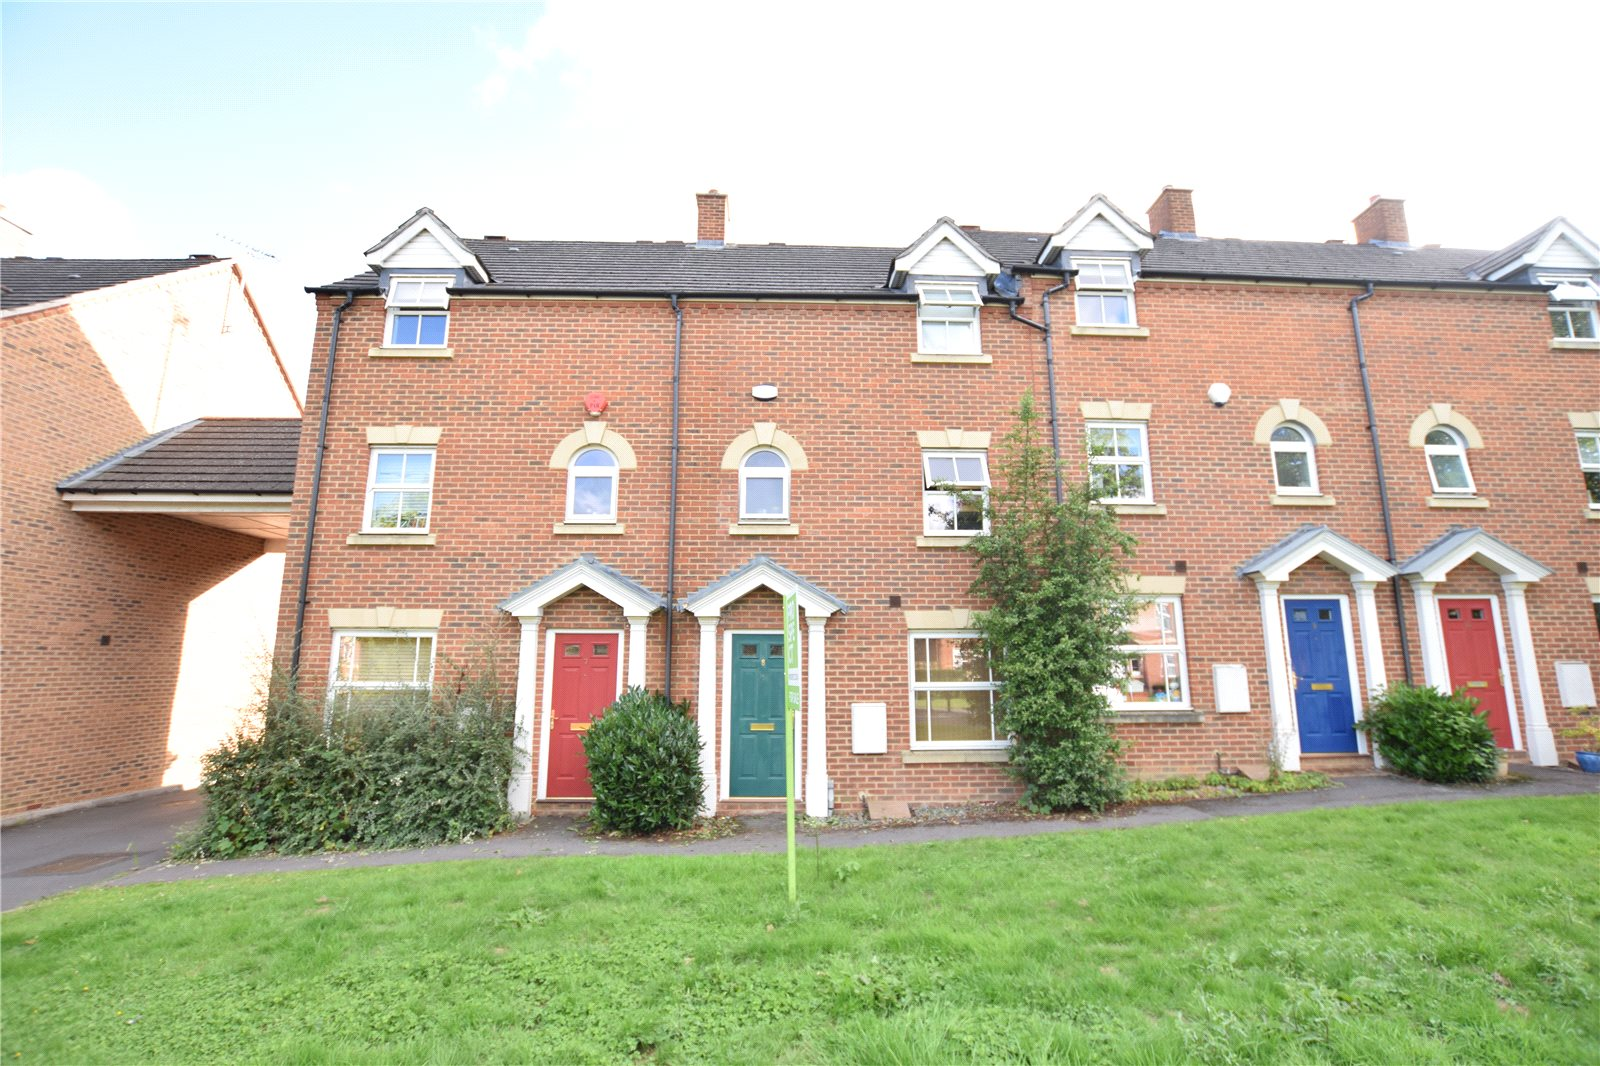 4 Bedrooms Terraced House for sale in Sycamore Rise, Bracknell, Berkshire, RG12